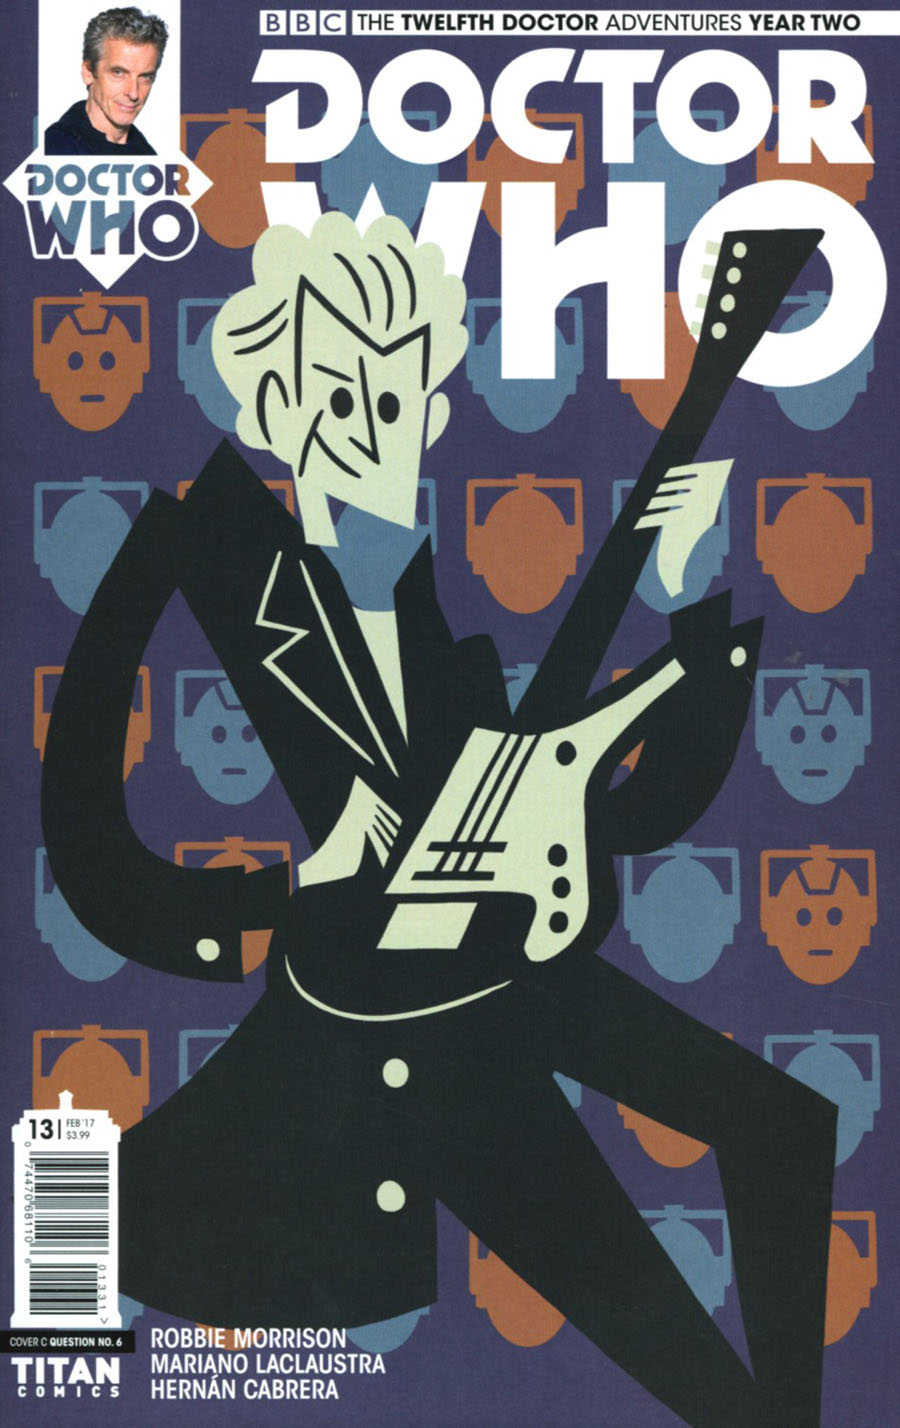 Doctor Who 12th Doctor Year Two #13 Cover C Variant Question No 6 Cover